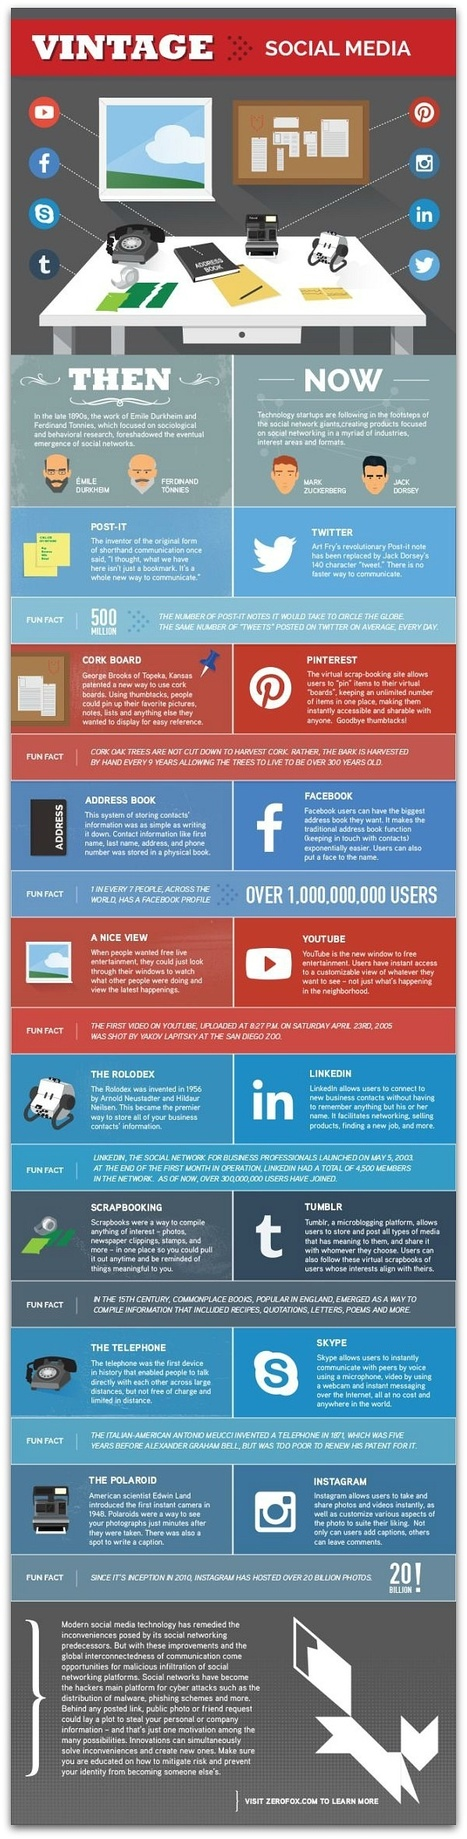 Social media then and now #infographic | Social and digital network | Scoop.it